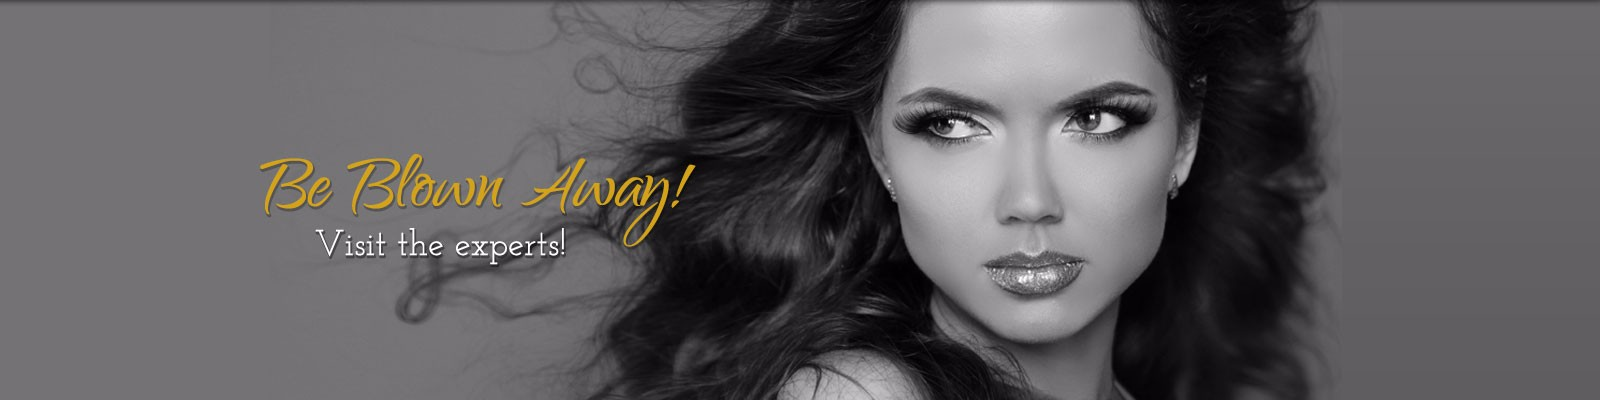 be blown away, visit the hair experts